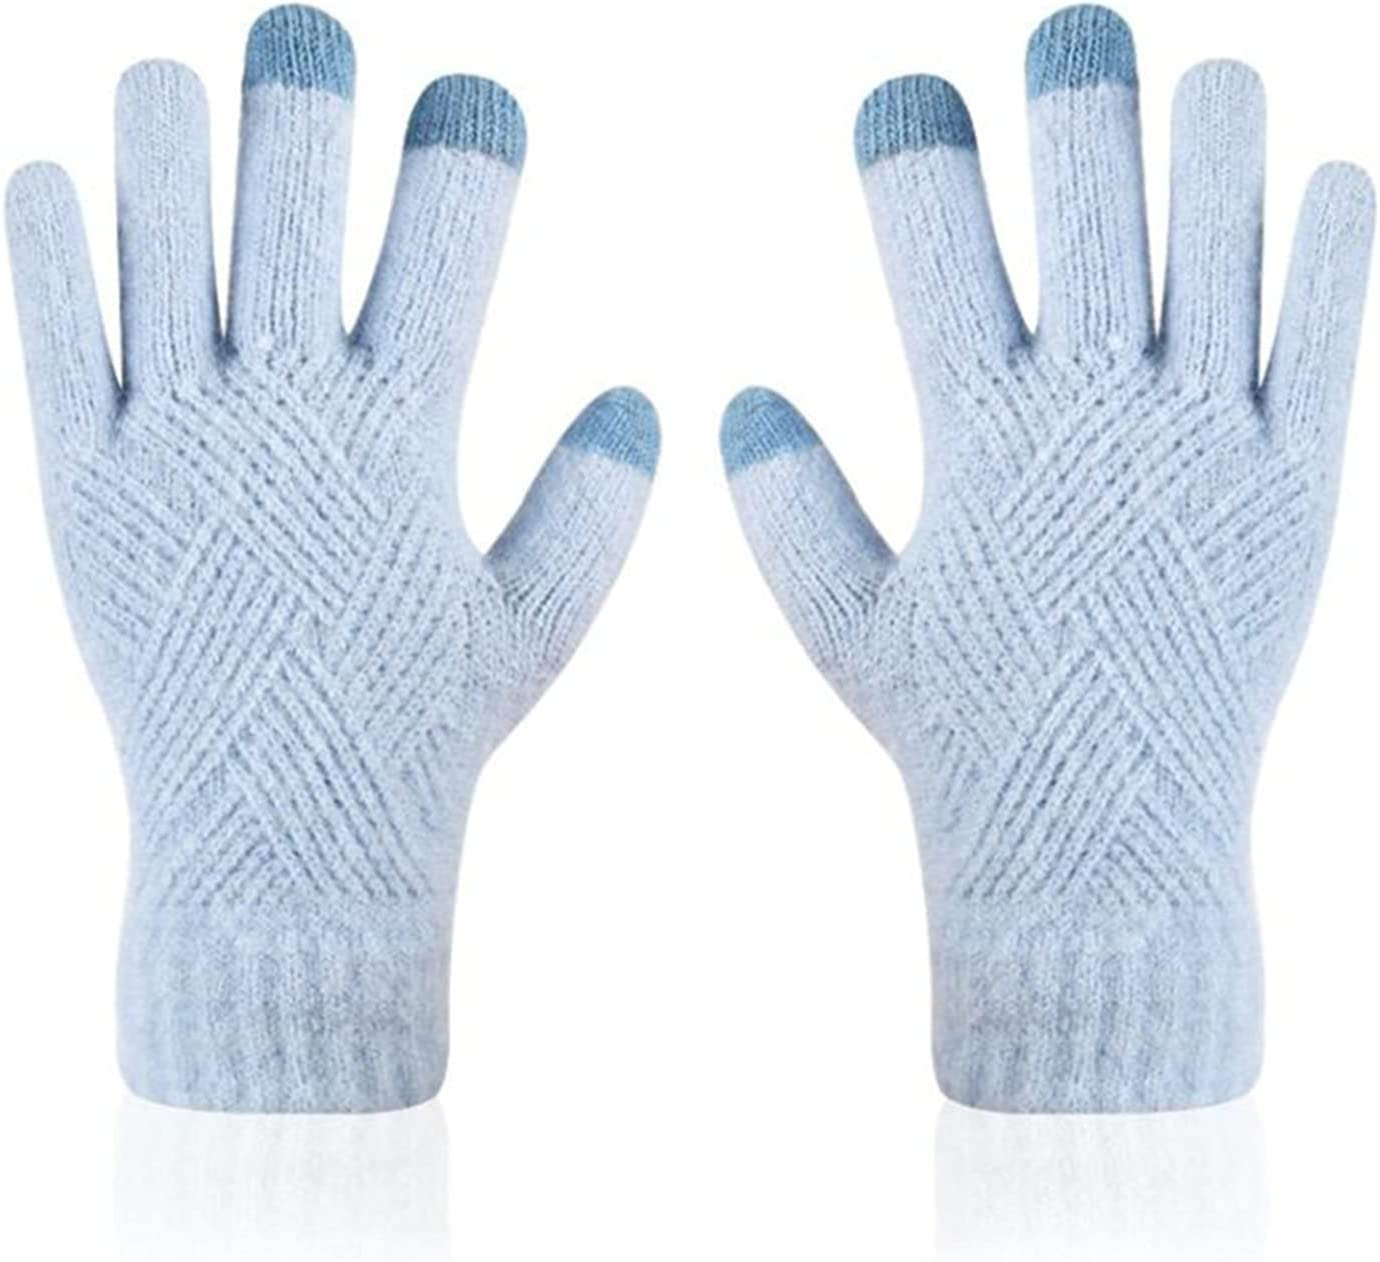 LANREN Female Winter Full Finger Gloves Men Touch Screen Mittens Women Thick Warm Cycling Driving Gloves (Color : 5, Gloves Size : One Size)